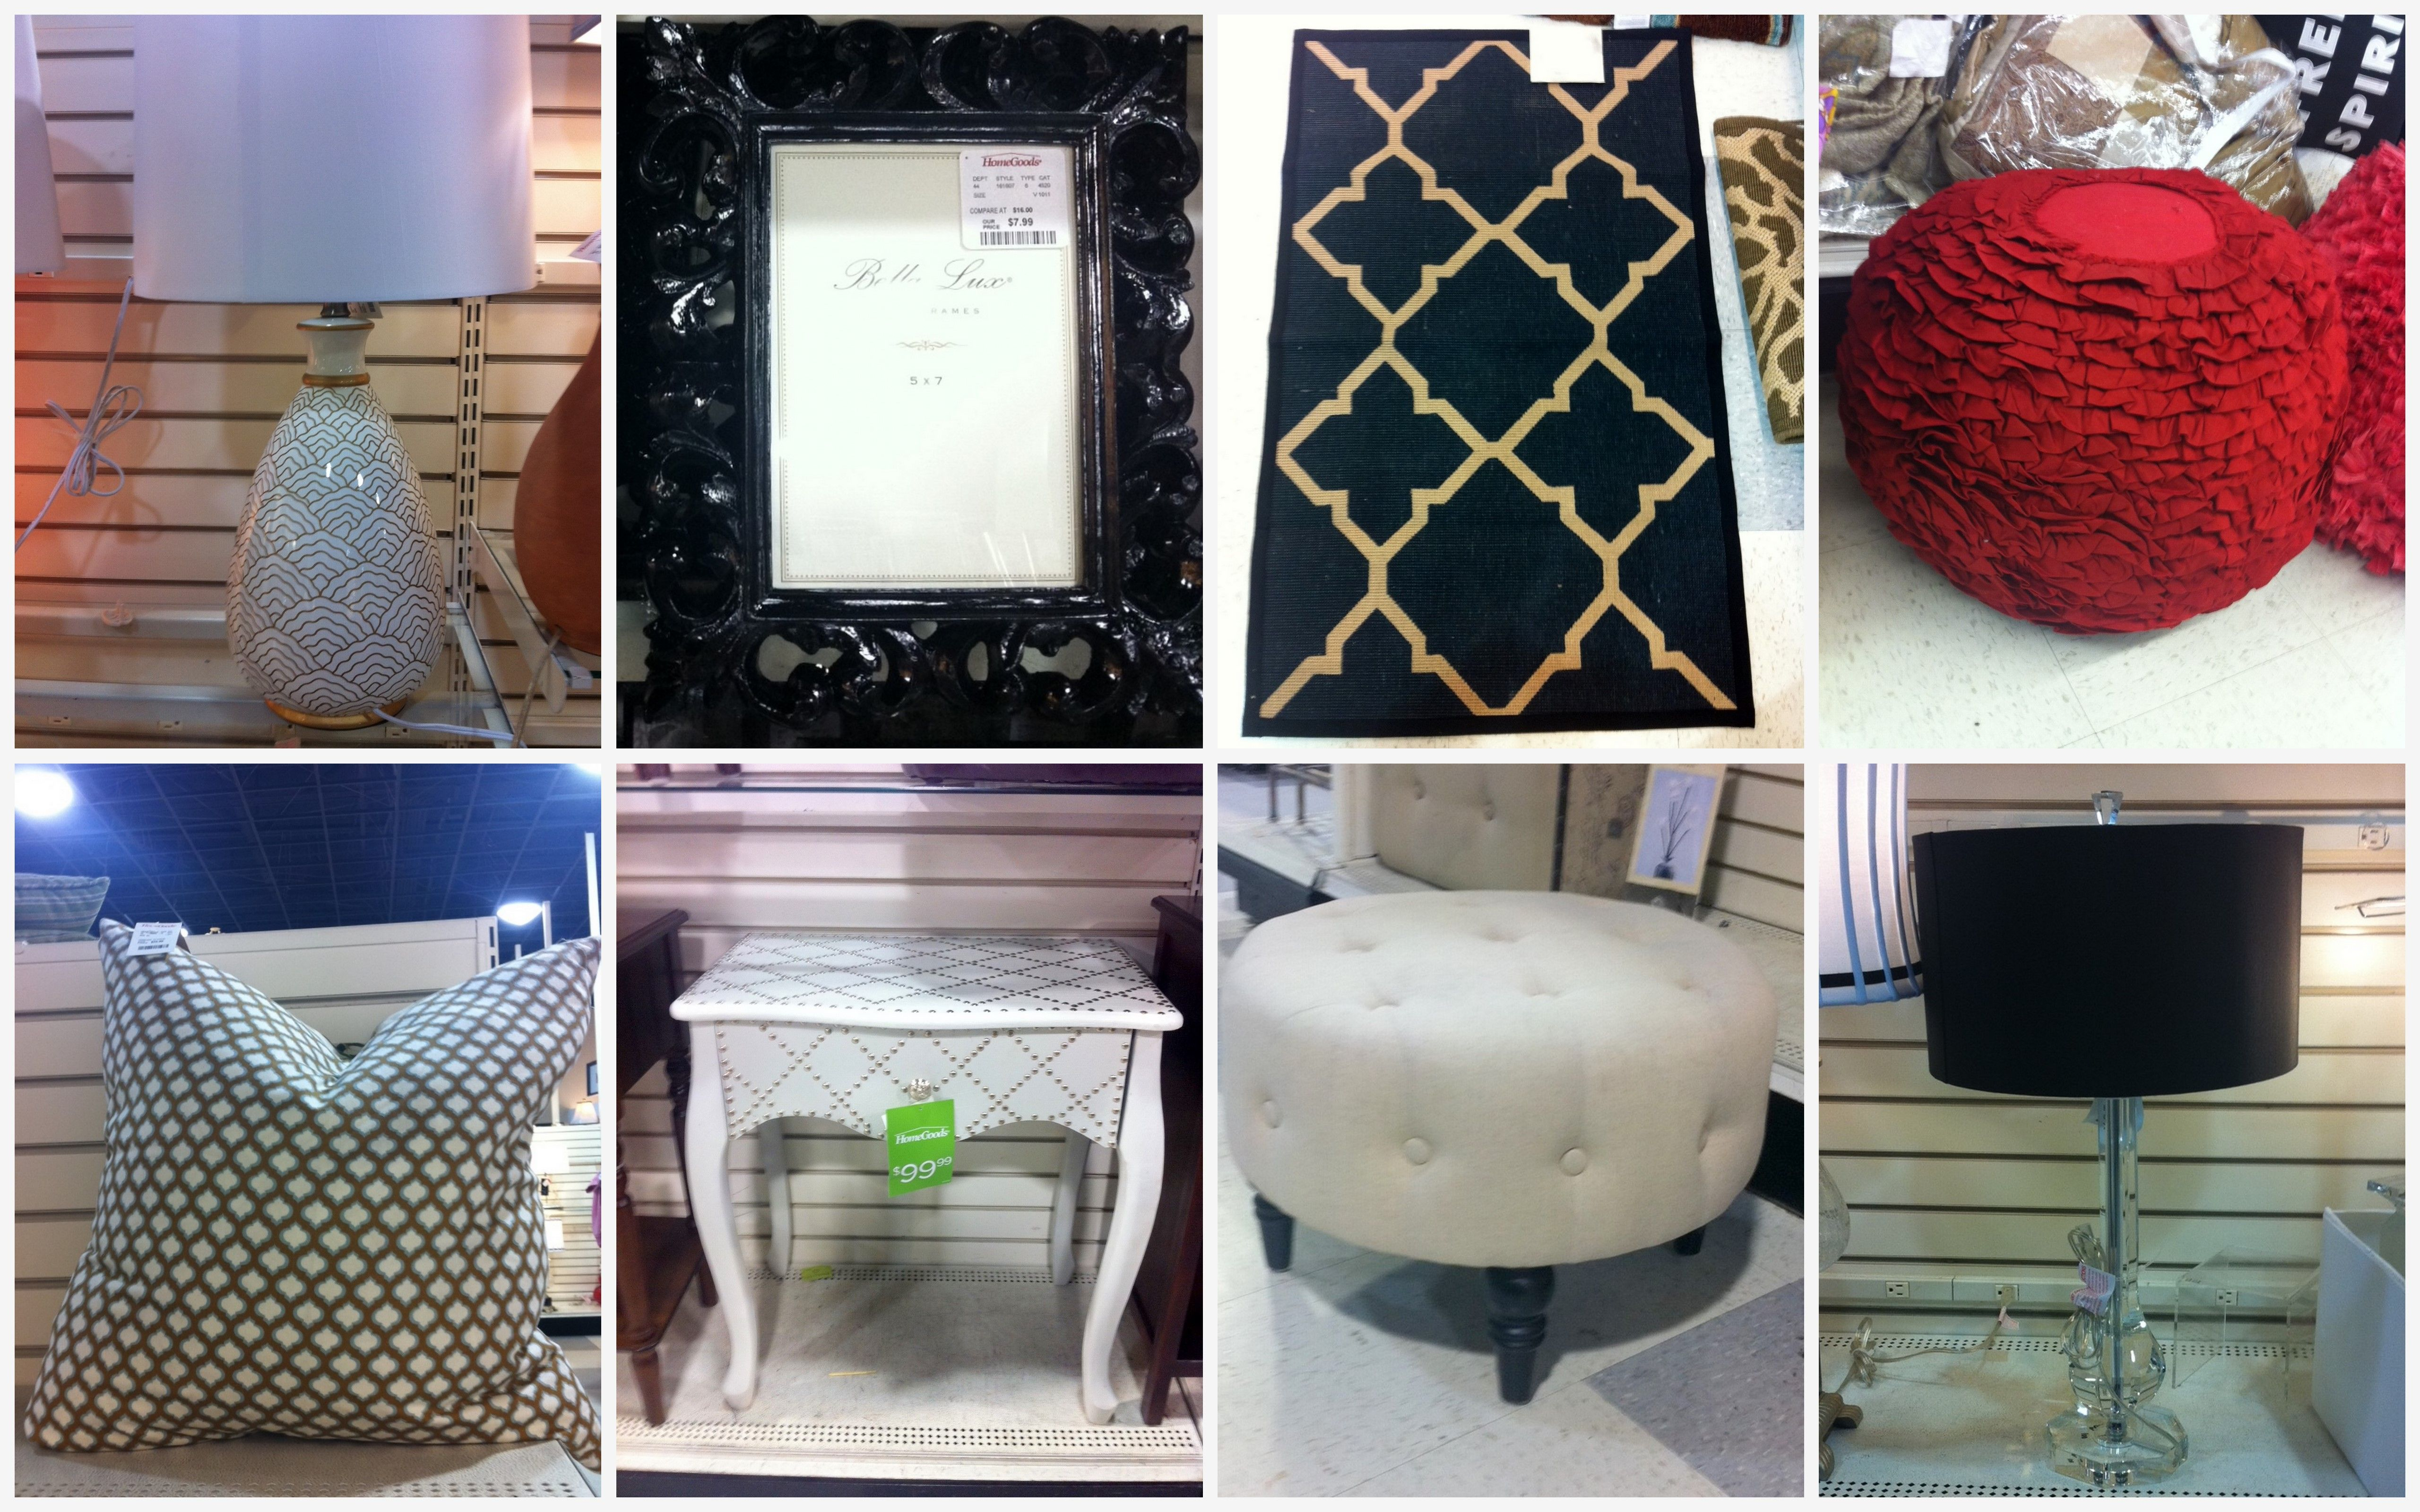 Beautiful TJ Maxx Home Goods Store | Home Goods Window Shopping 9 25